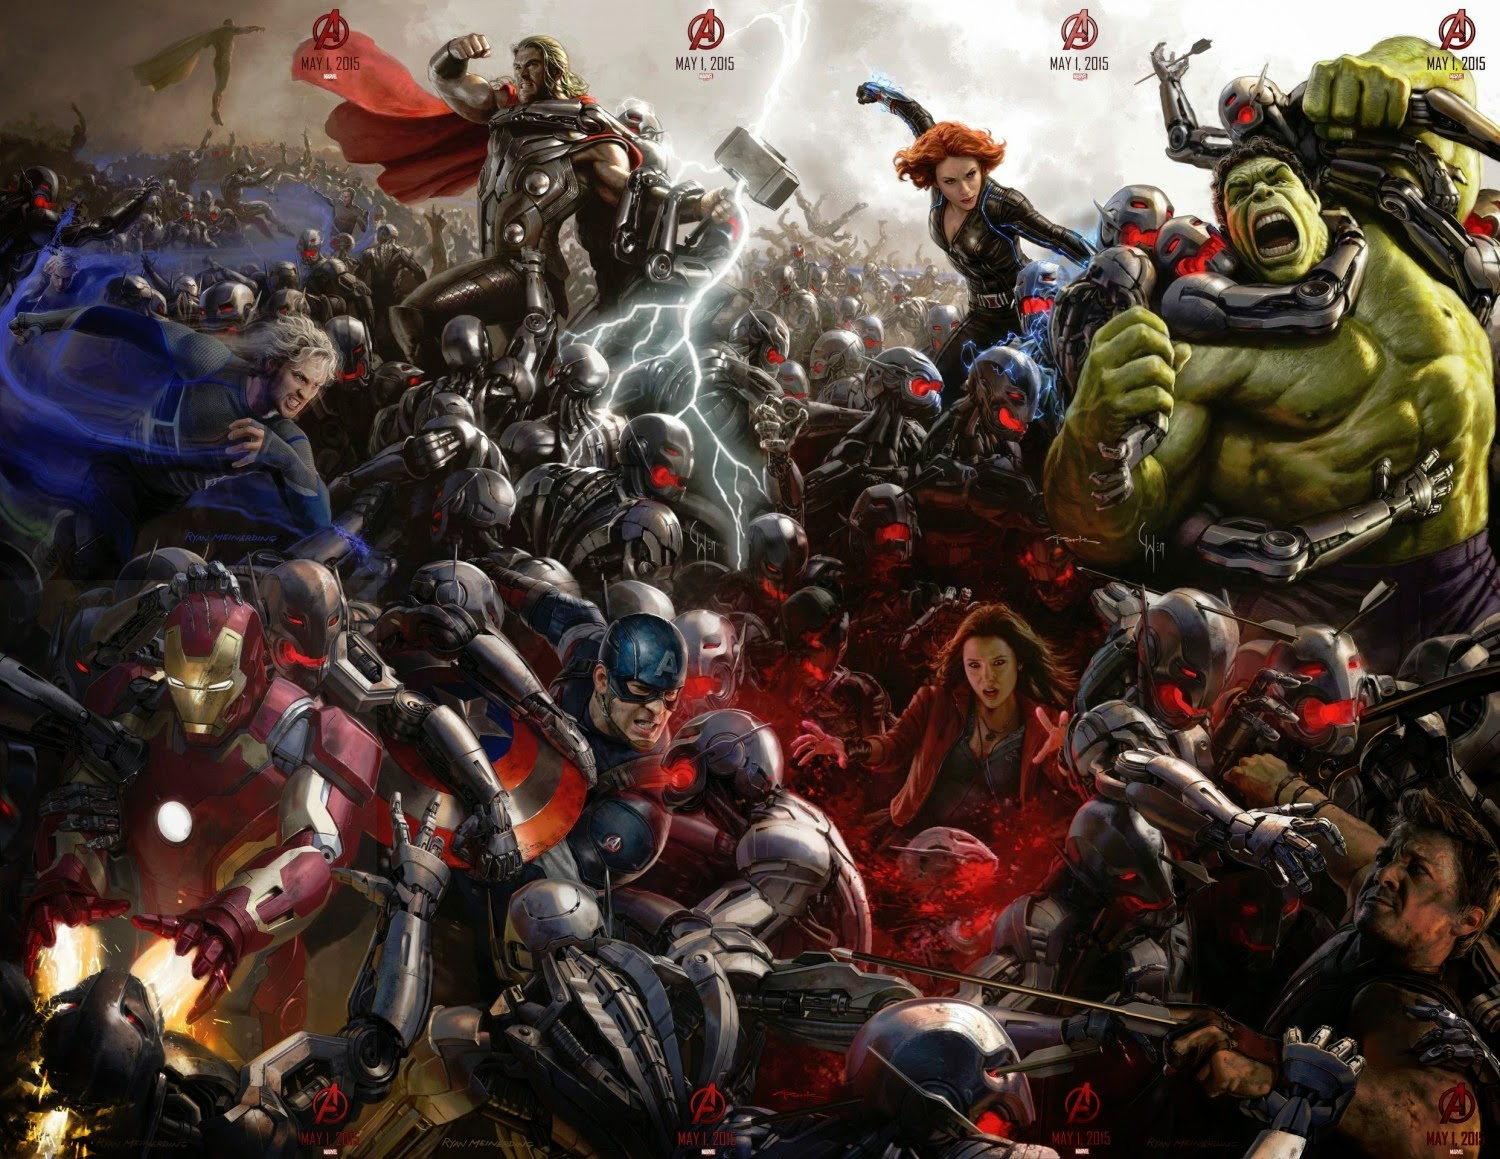 San Diego Comic-Con 2014 Exclusive Avengers Age of Ultron Concept Art Movie Posters by Marvel